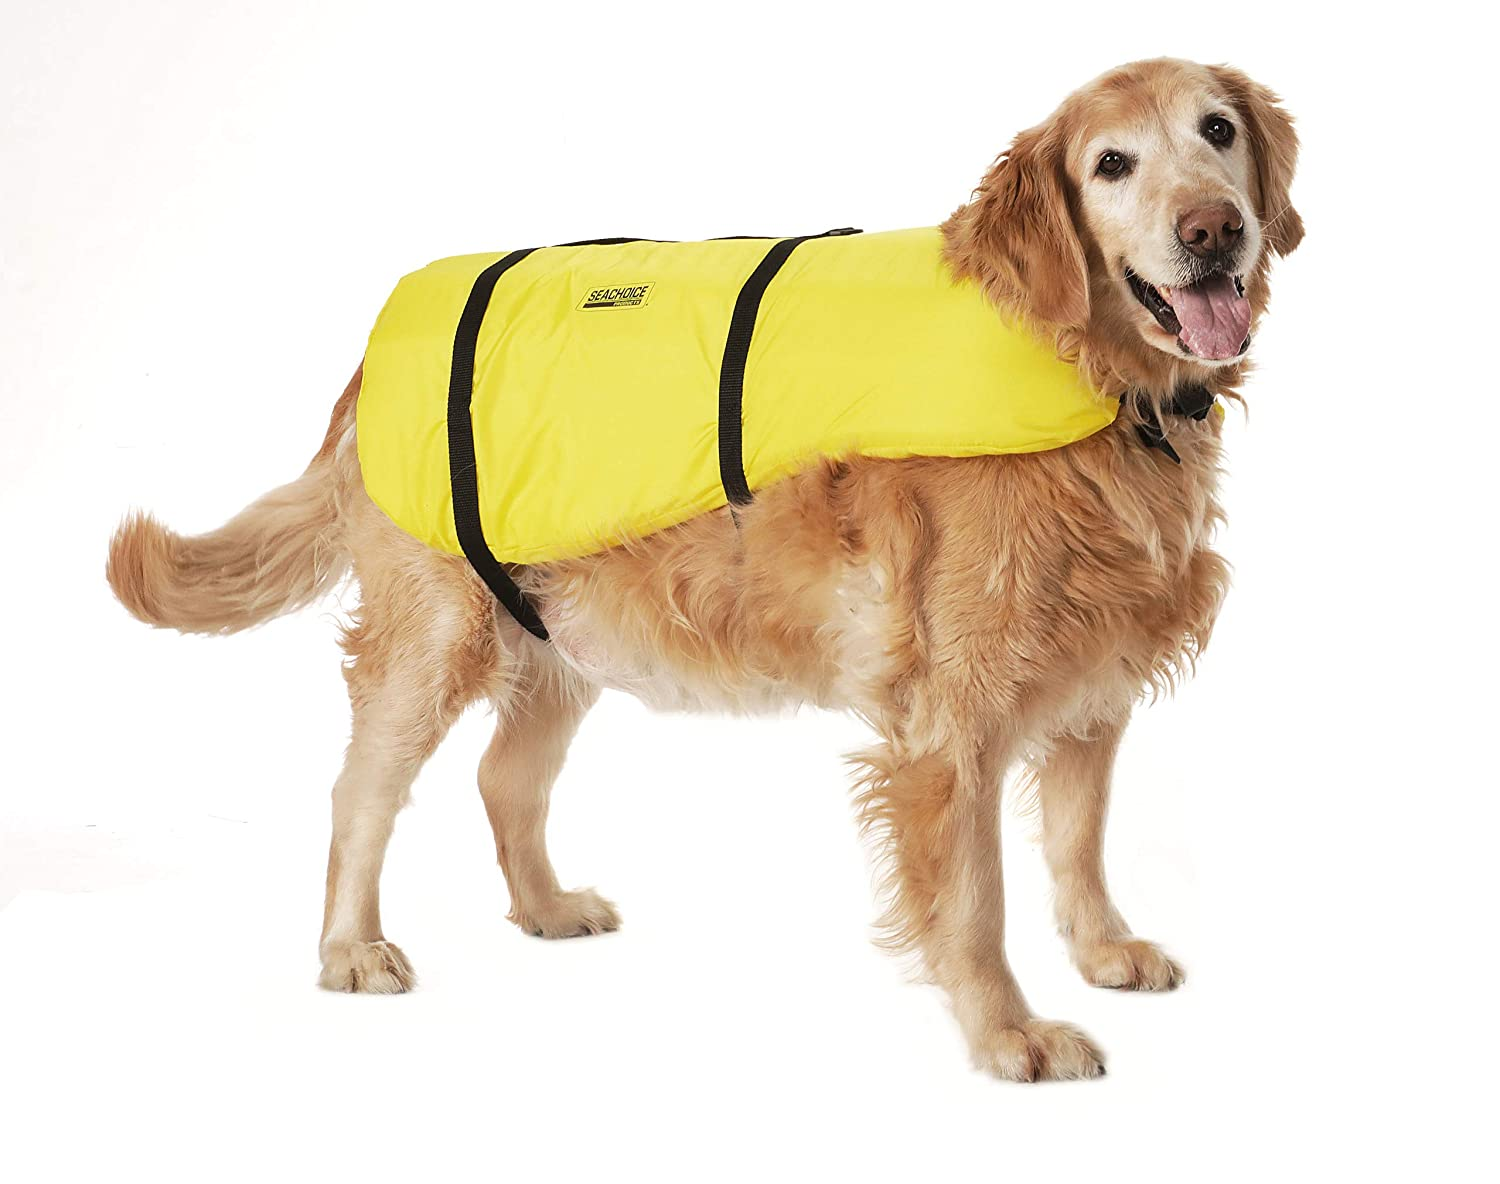 Yellow Seachoice 86340 Dog Life Vest with Grab Handle Size Large 50 to 90 Pounds Adjustable Life Jacket for Dogs